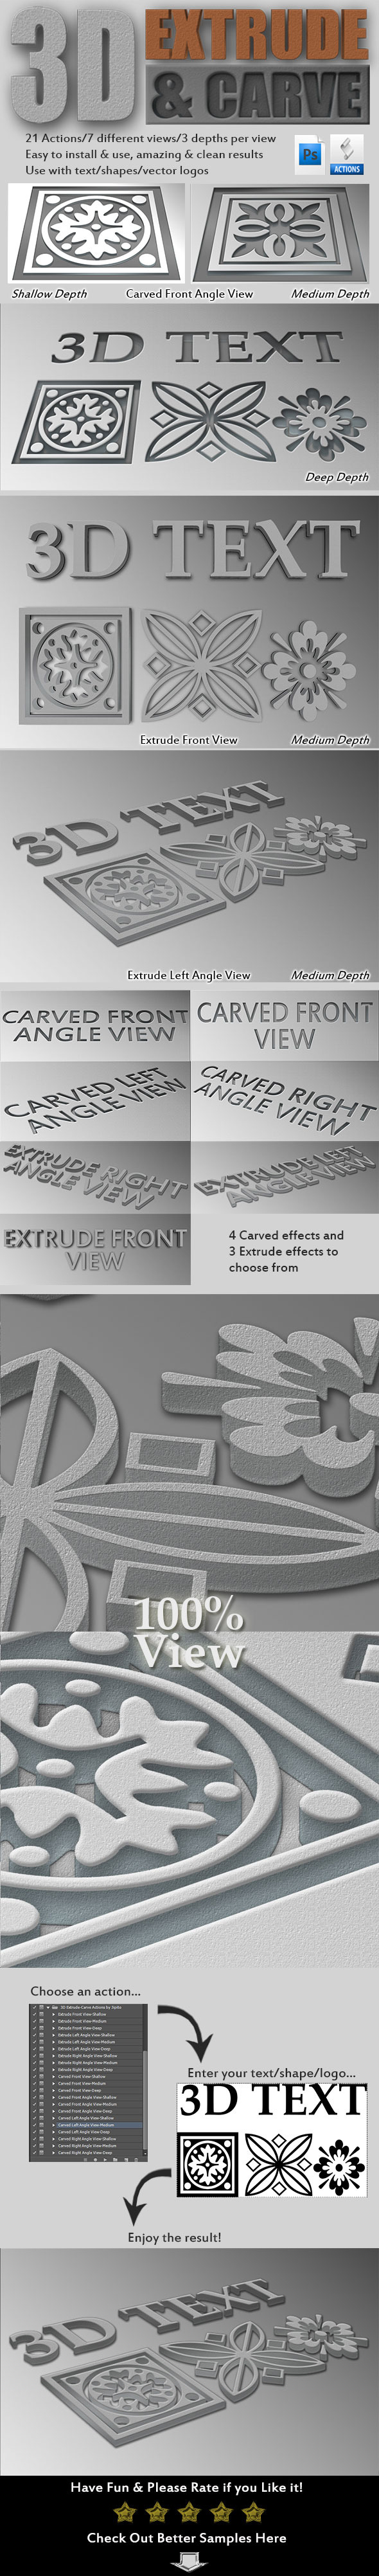 3D Extrude-Carve Actions